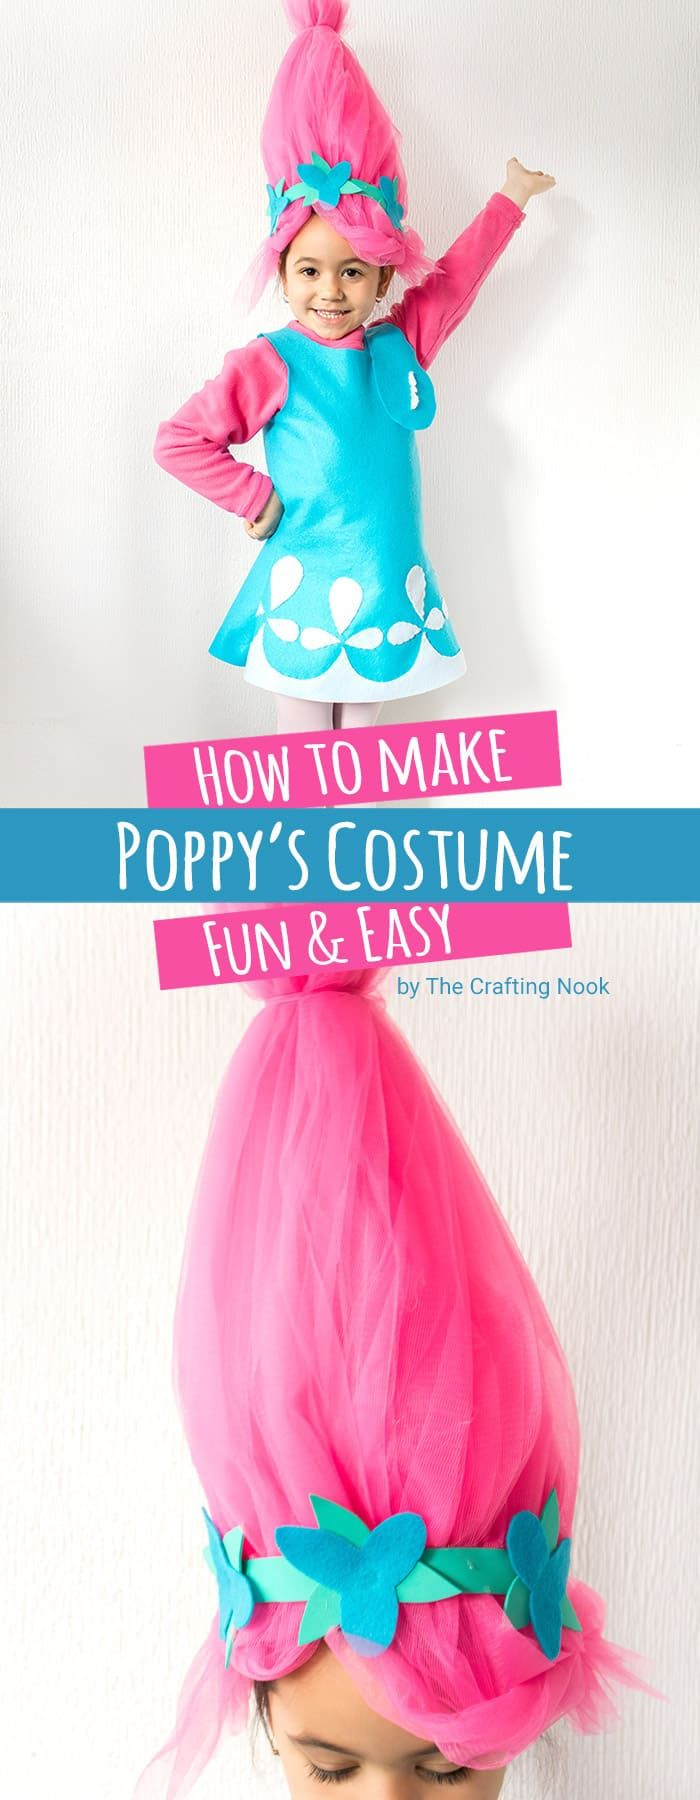 Need a last minute Troll's Poppy Costume??? You got it you can have this costume done in about 2 to 3 hours and you don't need to be a pro sewer. It's super cute and easy to make!